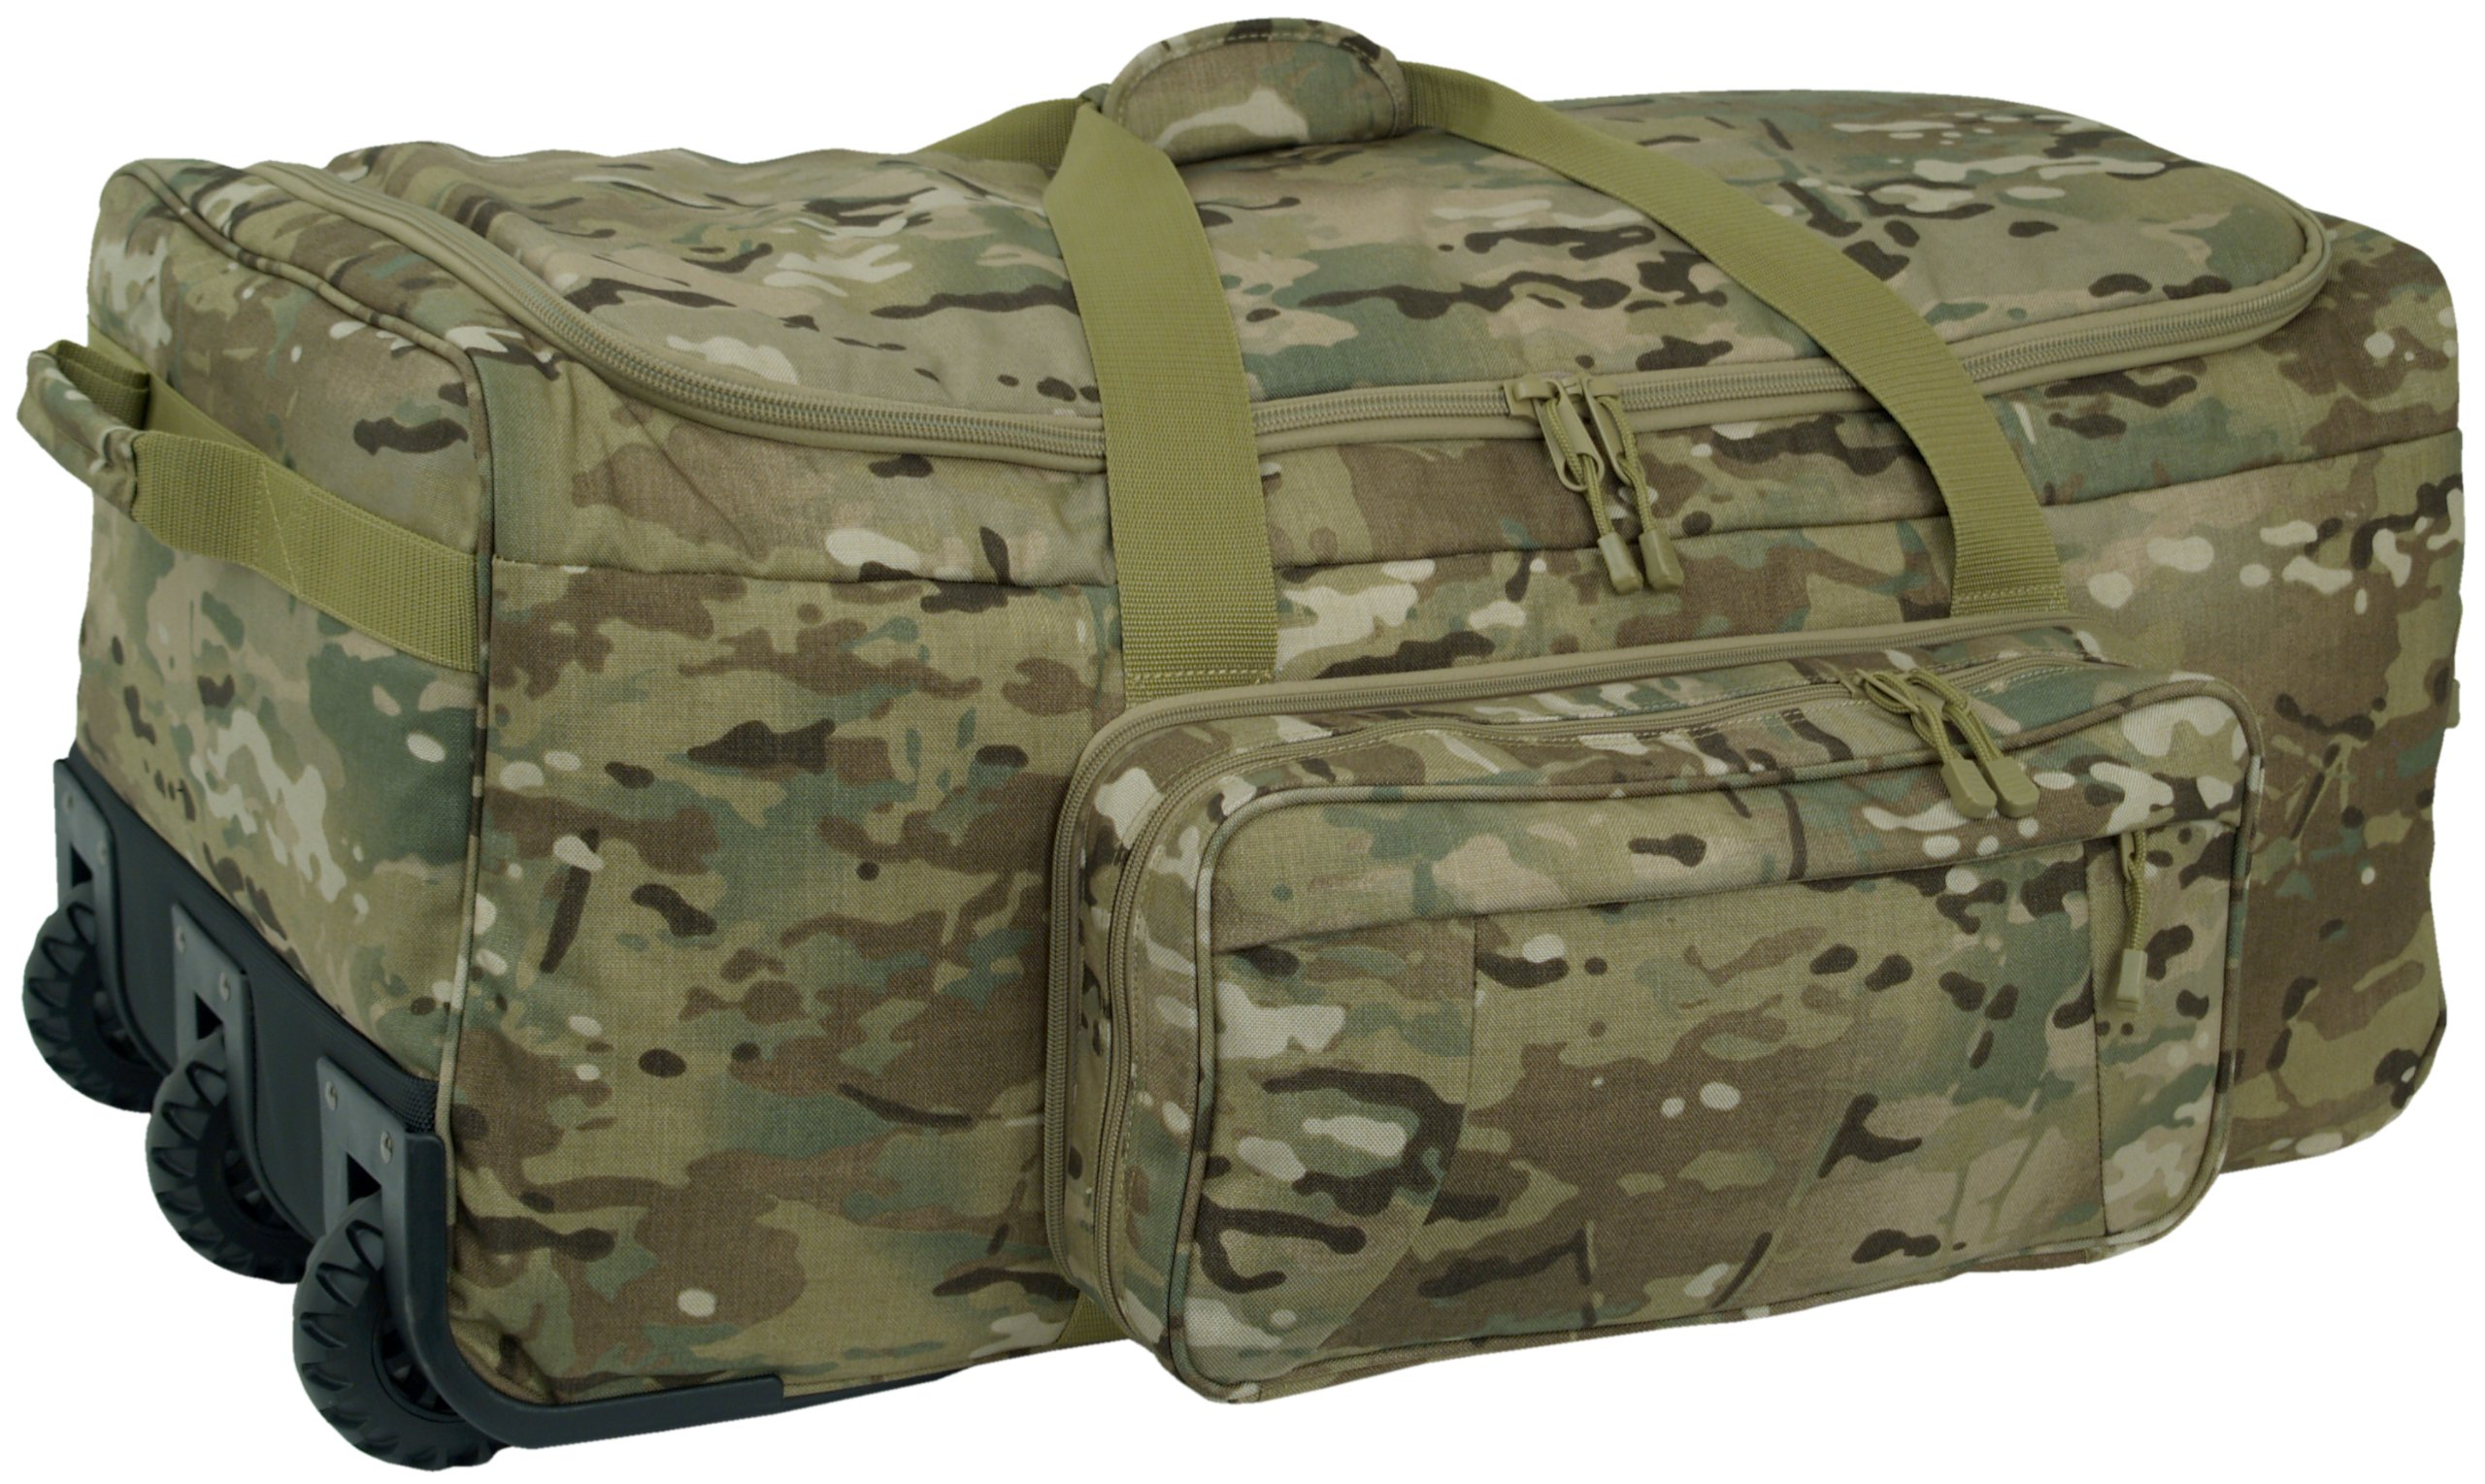 Mercury Tactical Gear Code Alpha Mini Monster Wheeled Deployment Bag Multicam, Multi Cam